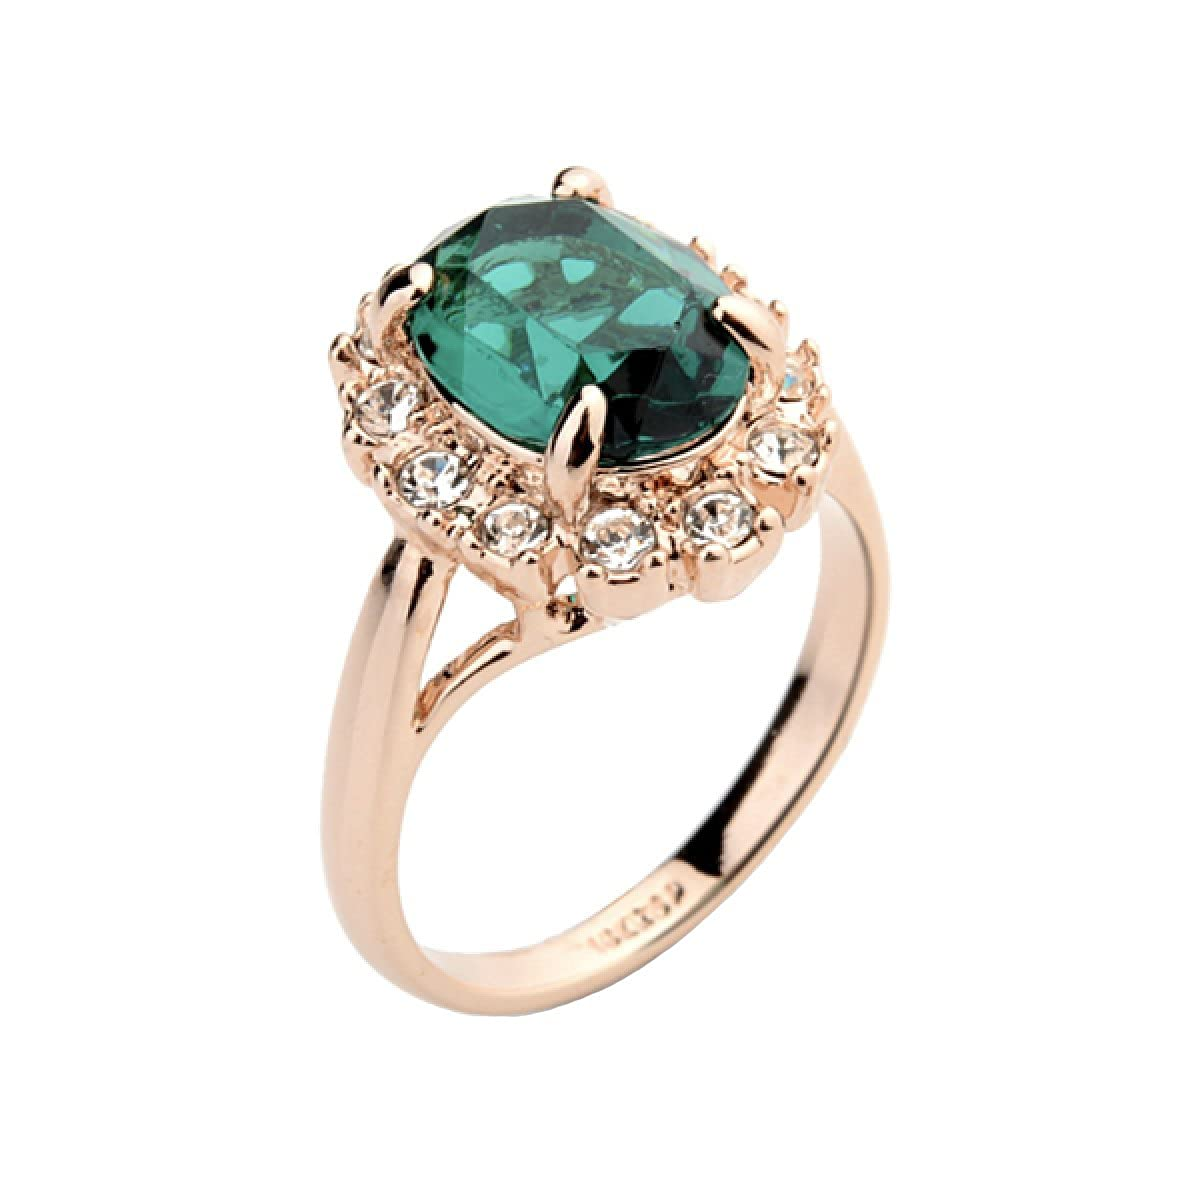 8b5ace933 Rose Gold Plated Oval Shaped Gem Style Ring with Emerald Green Swarovski  element Crystal and Clear Round Shaped Cubic Zirconia Fashion Jewelry for  Women